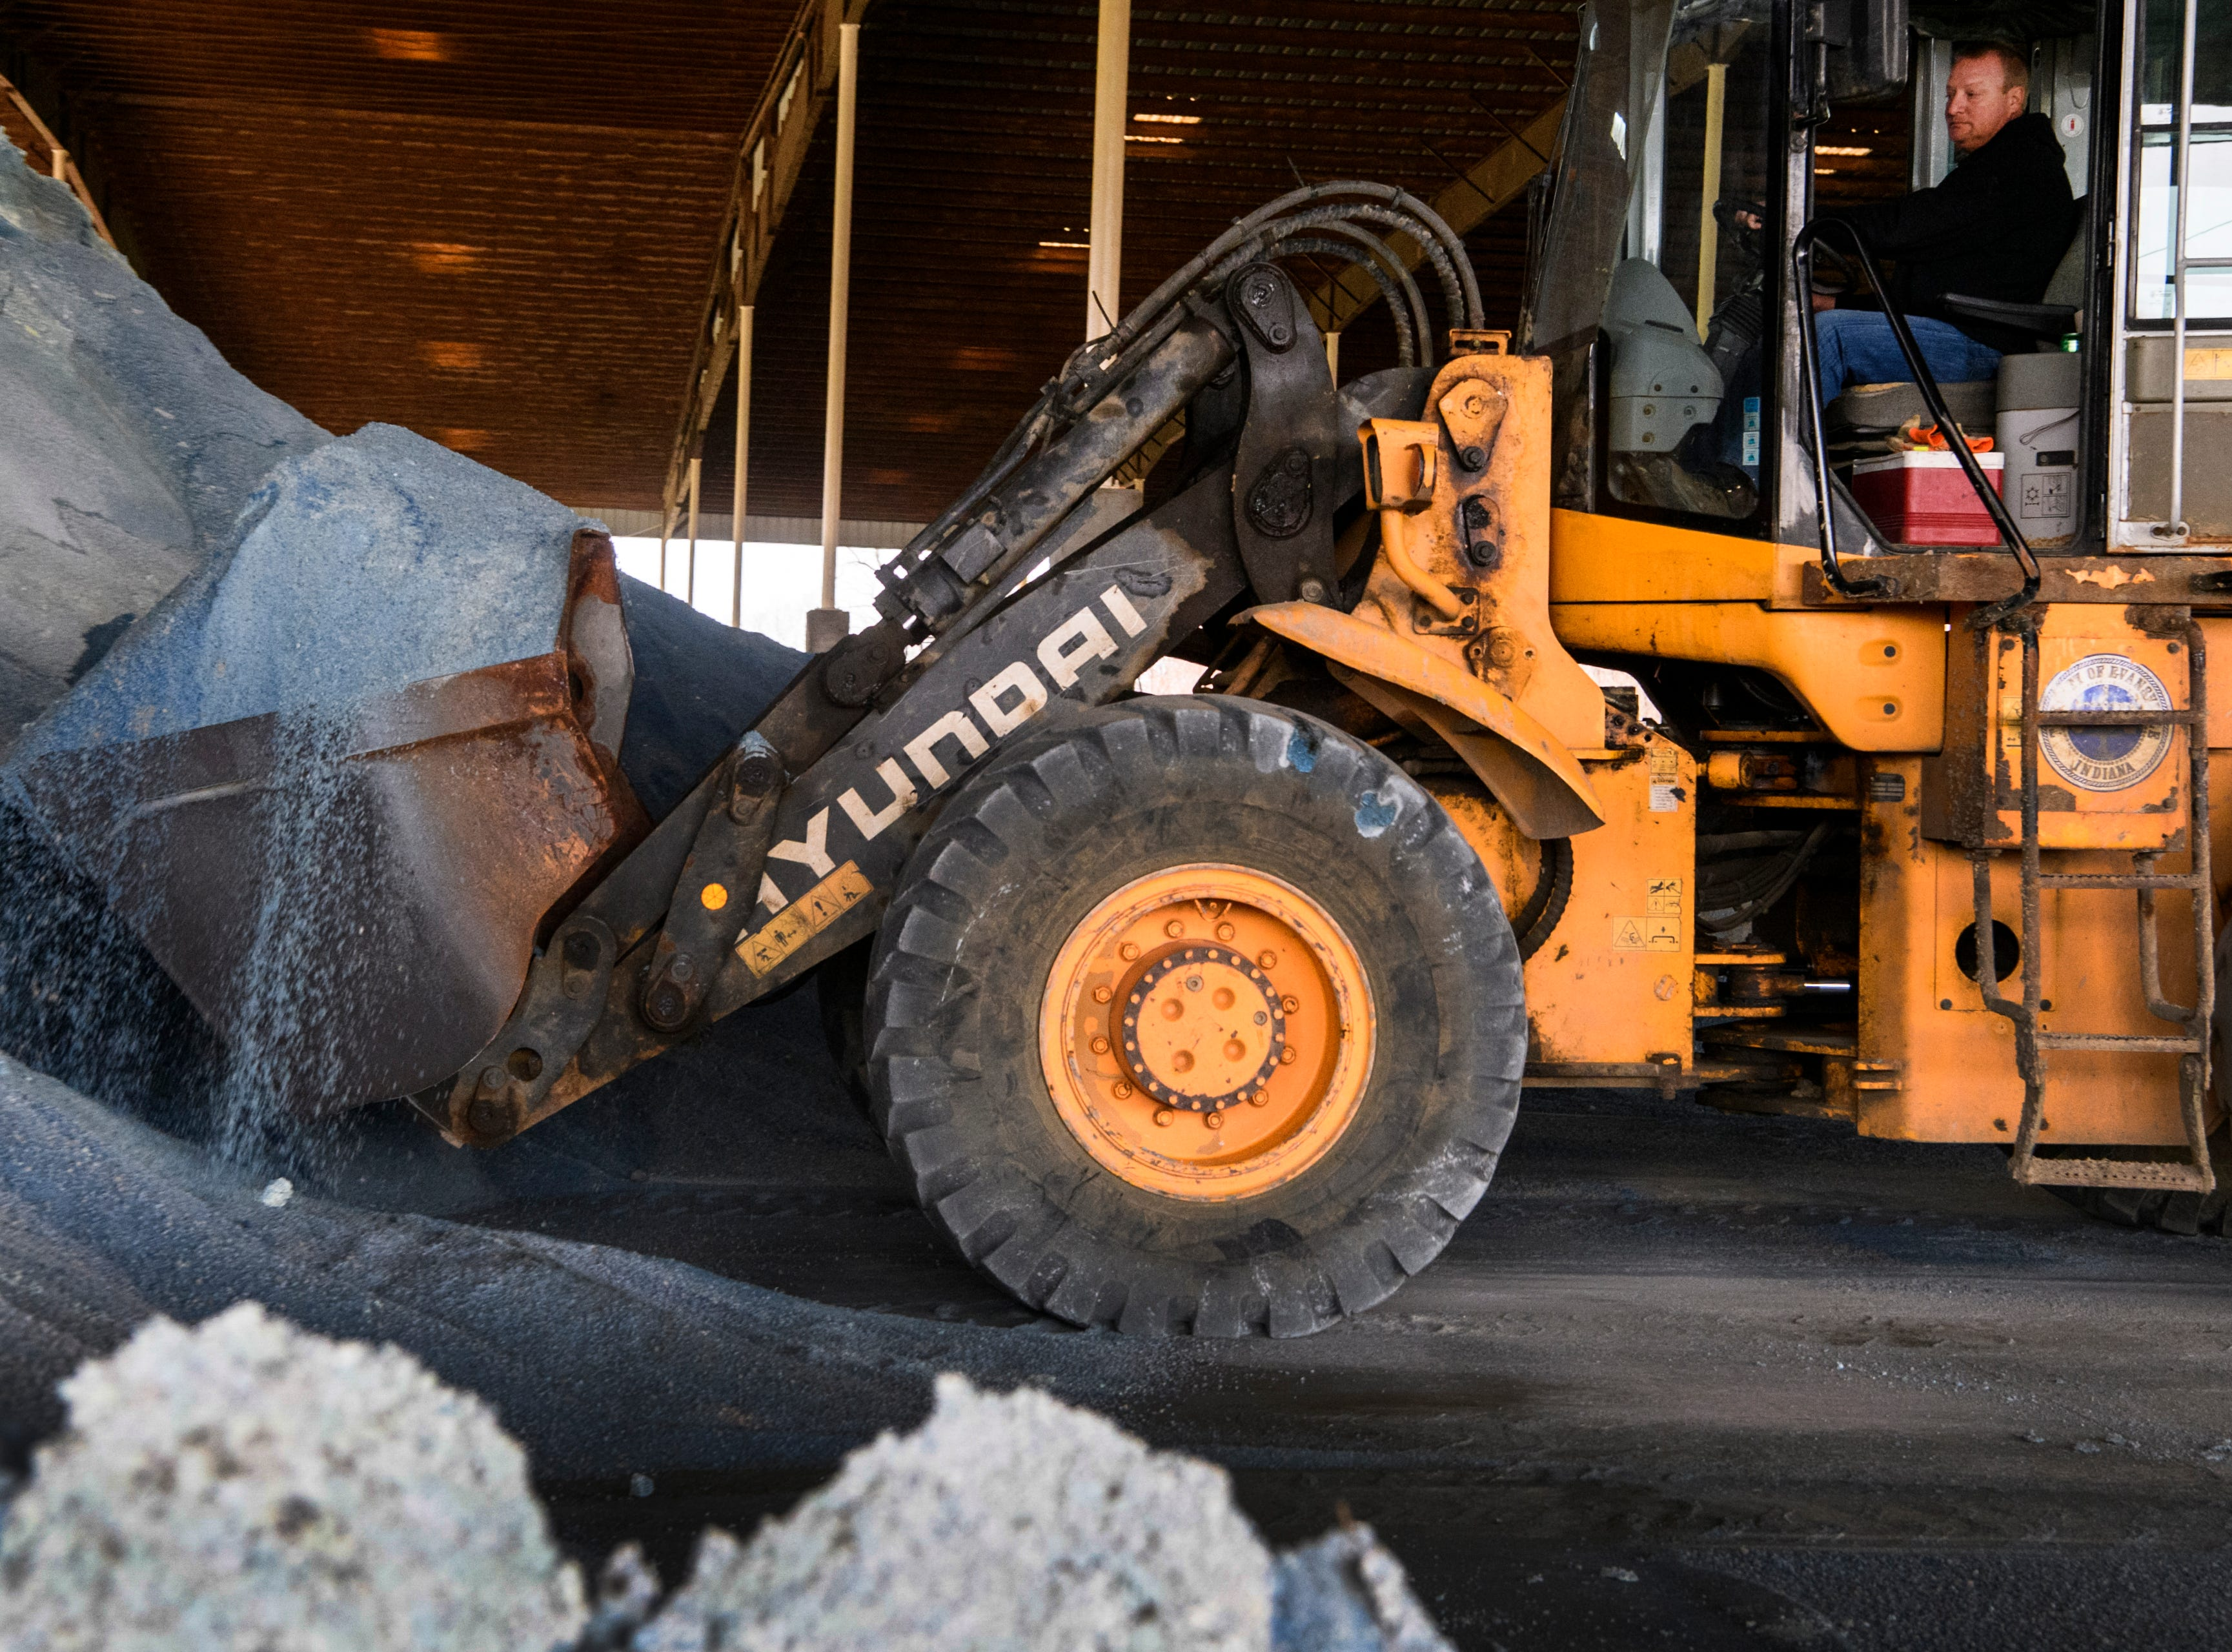 Brad Haller, a City of Evansville's Street Maintenance operator, scoops up salt to load into a truck at the salt barn located in the East Waste Water Treatment plant in Evansville, Ind., Friday, Jan. 11, 2019. The city has twelve trucks that will be deployed around the area to treat roads as the weather worsens.